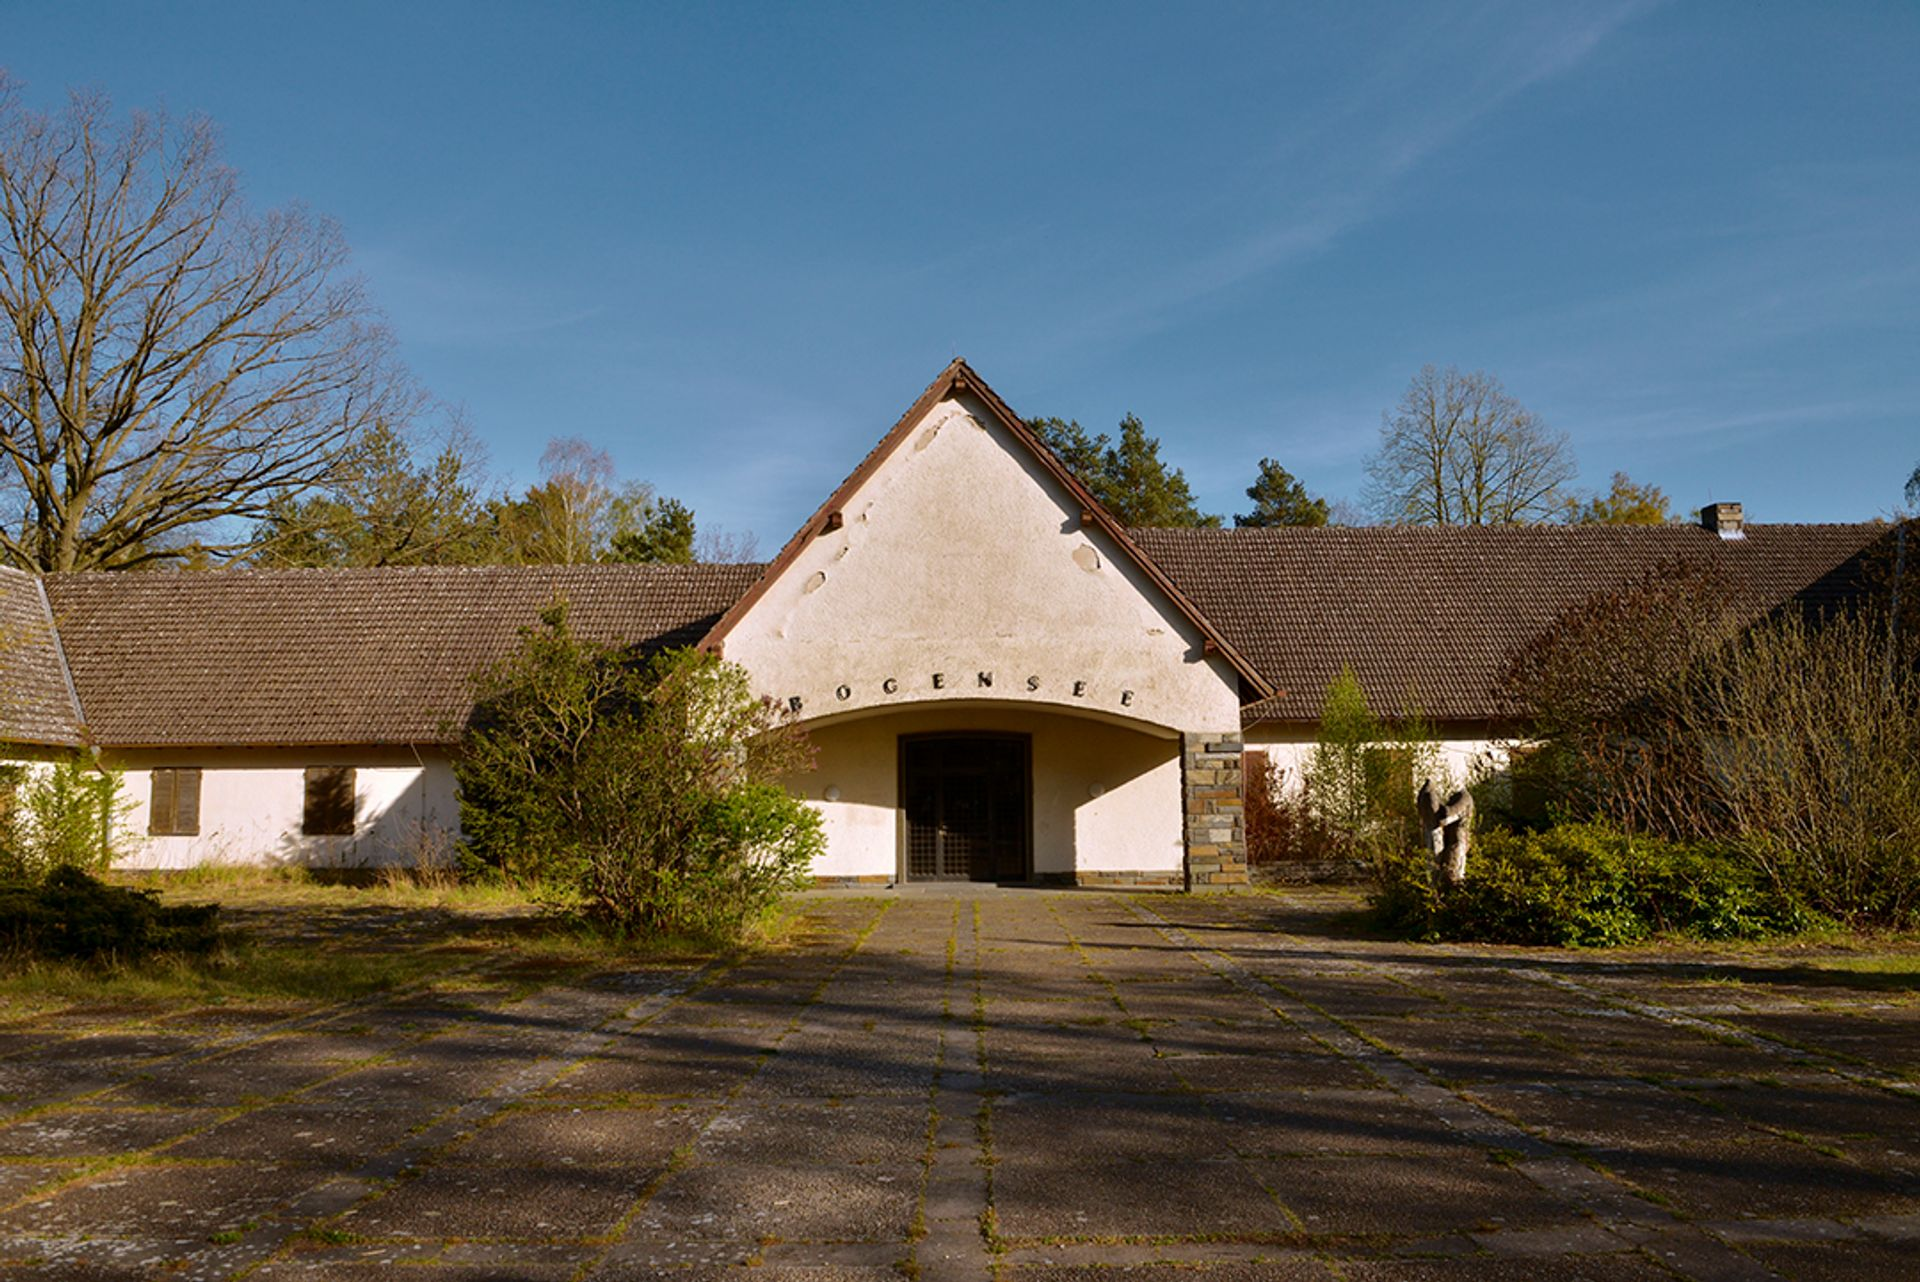 The retreat of Bogensee was used by Joseph Goebbels to seduce film actresses Courtesy of LKC Bogensee